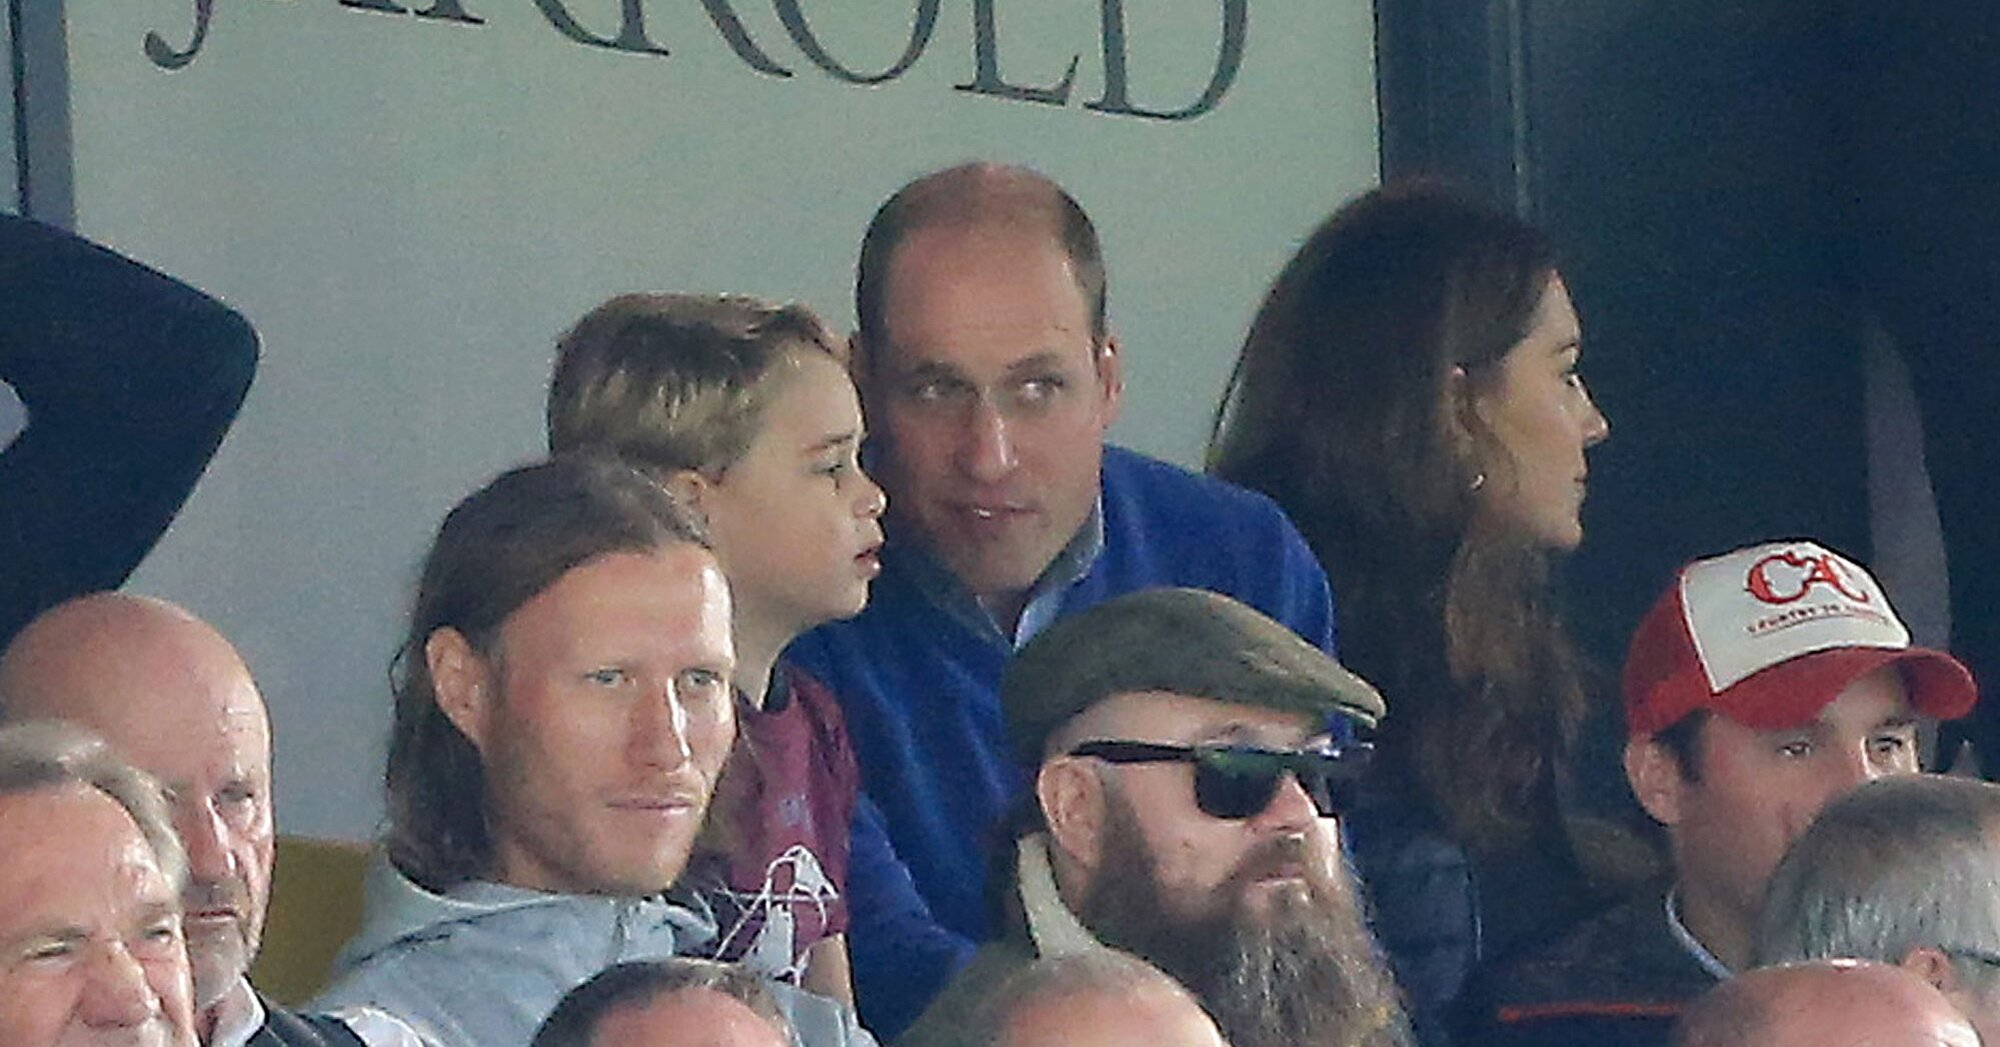 Prince William Reveals Why He Couldn't Cheer Too Loudly at Prince George's First Soccer Match